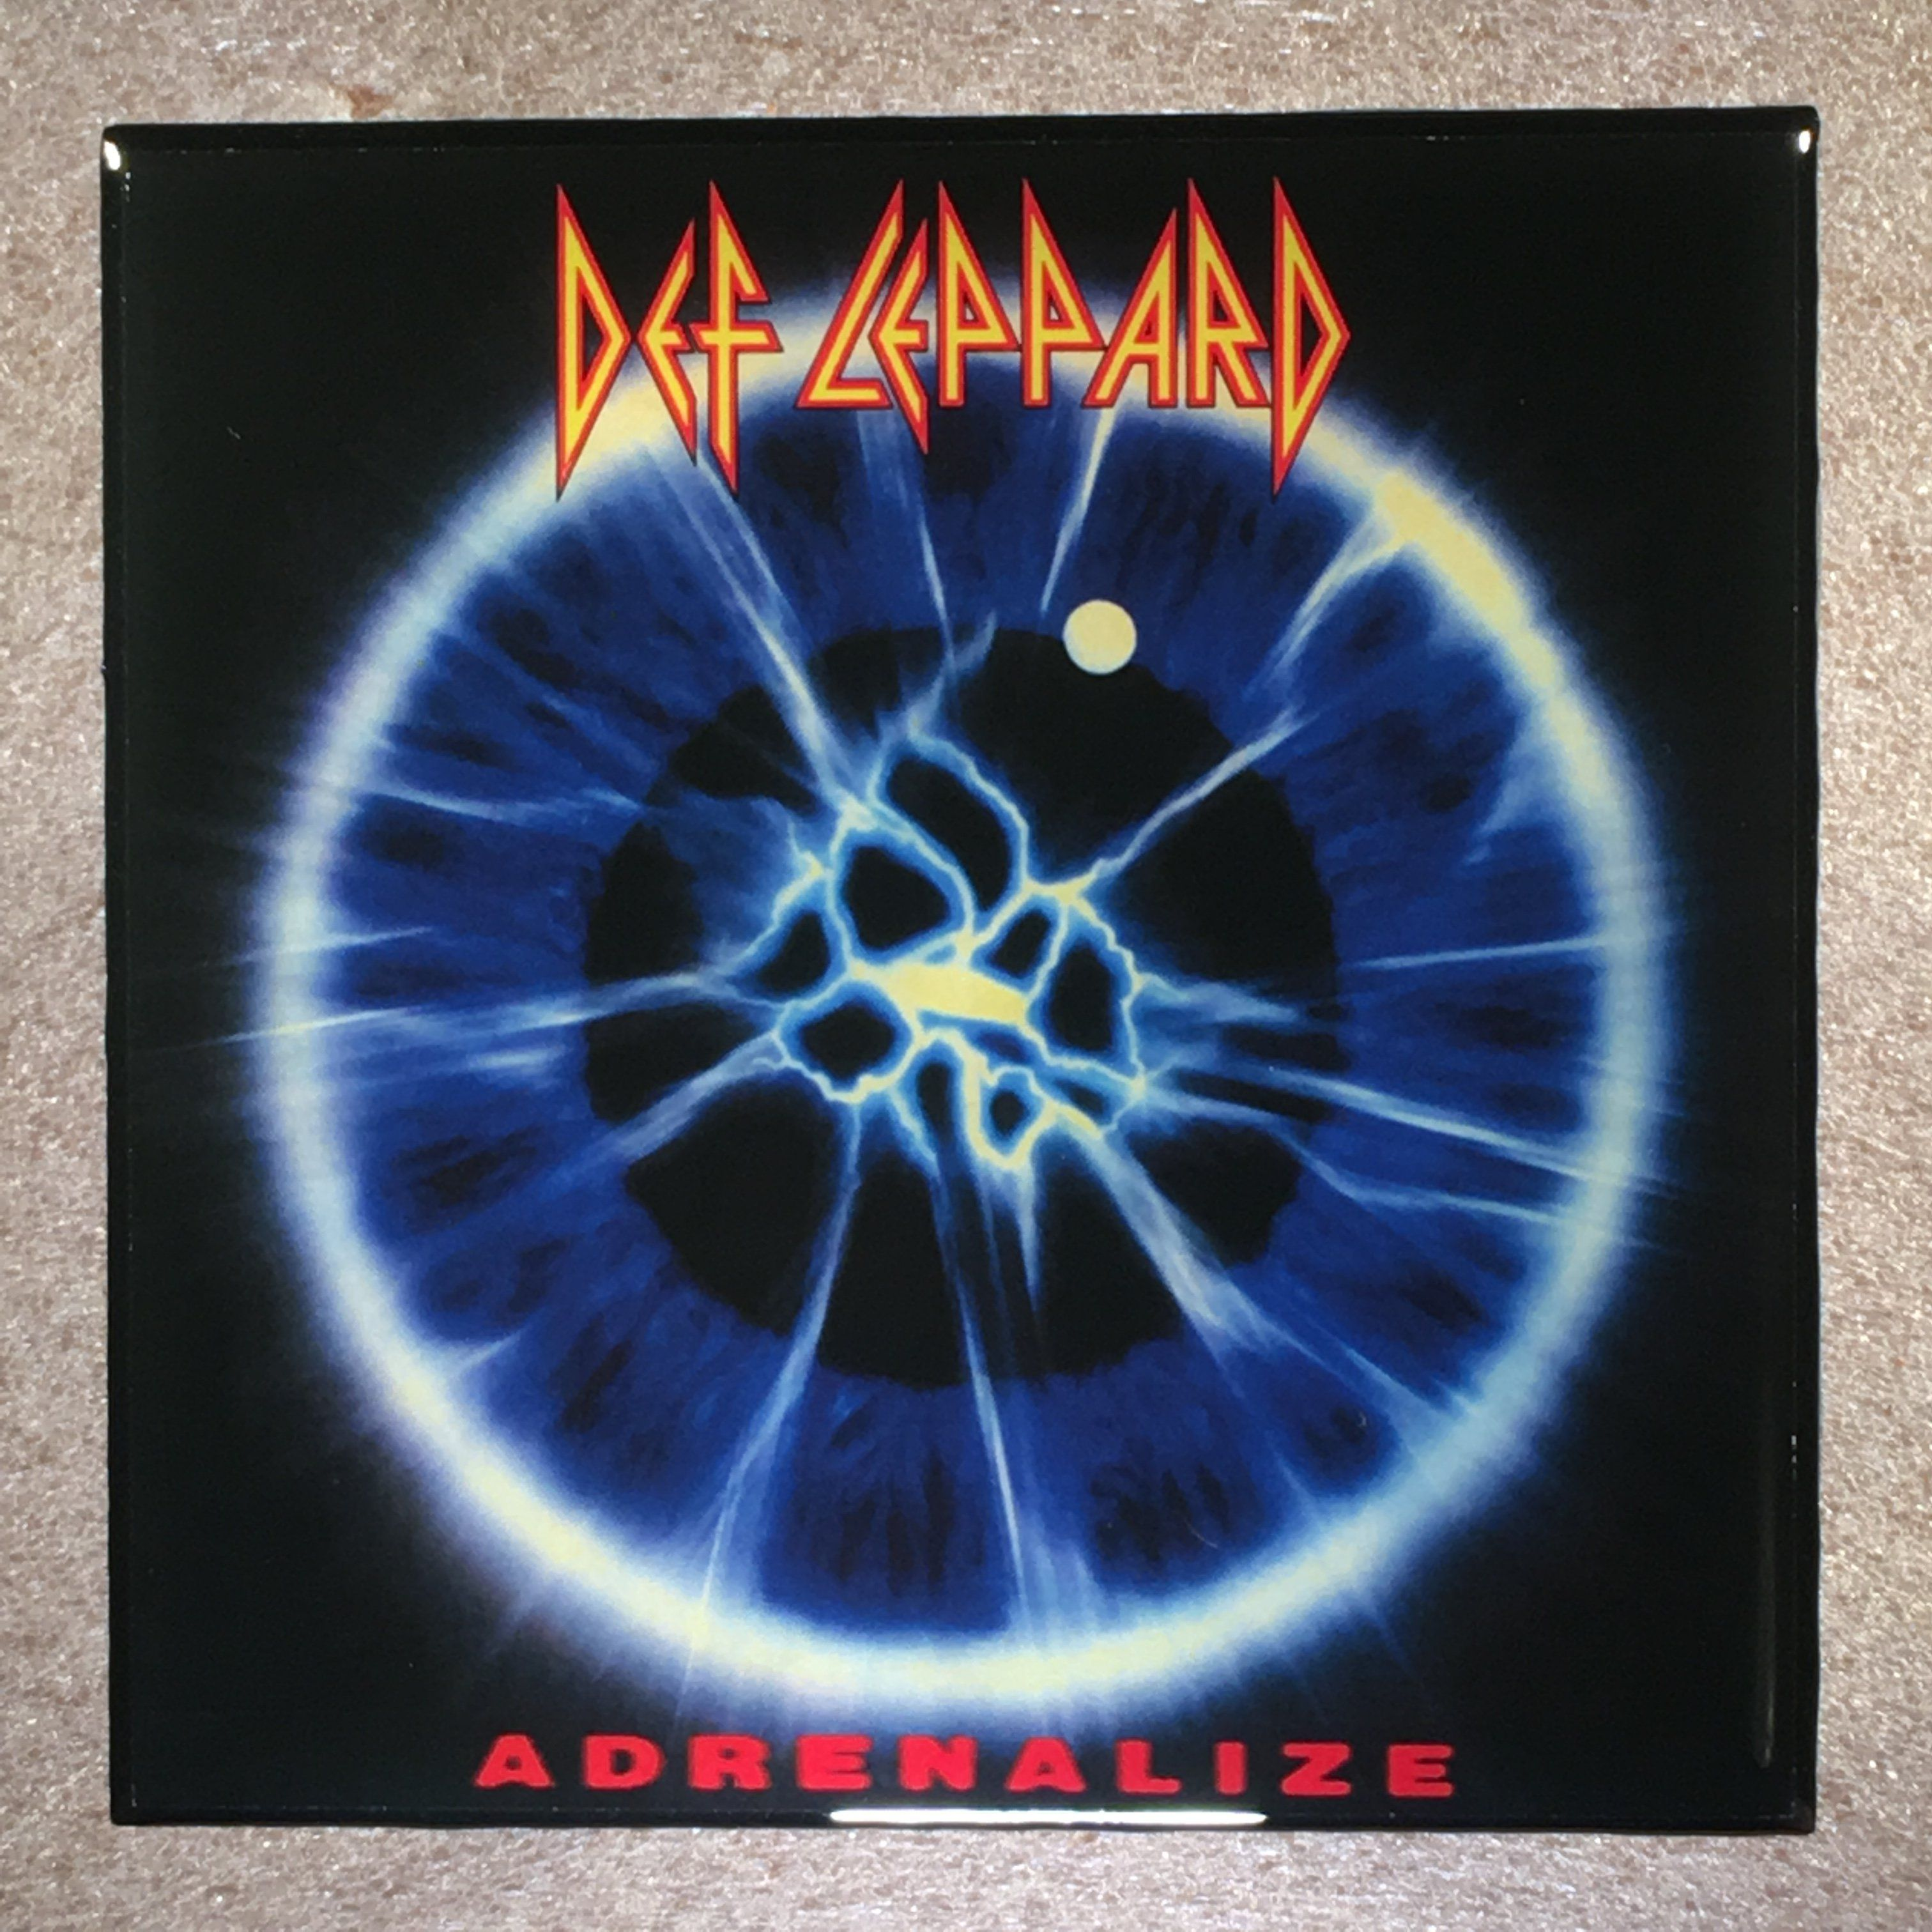 Def Leppard Adrenalize Coaster Record Cover Ceramic Tile Def Leppard Def Leppard Albums Def Leppard Poster